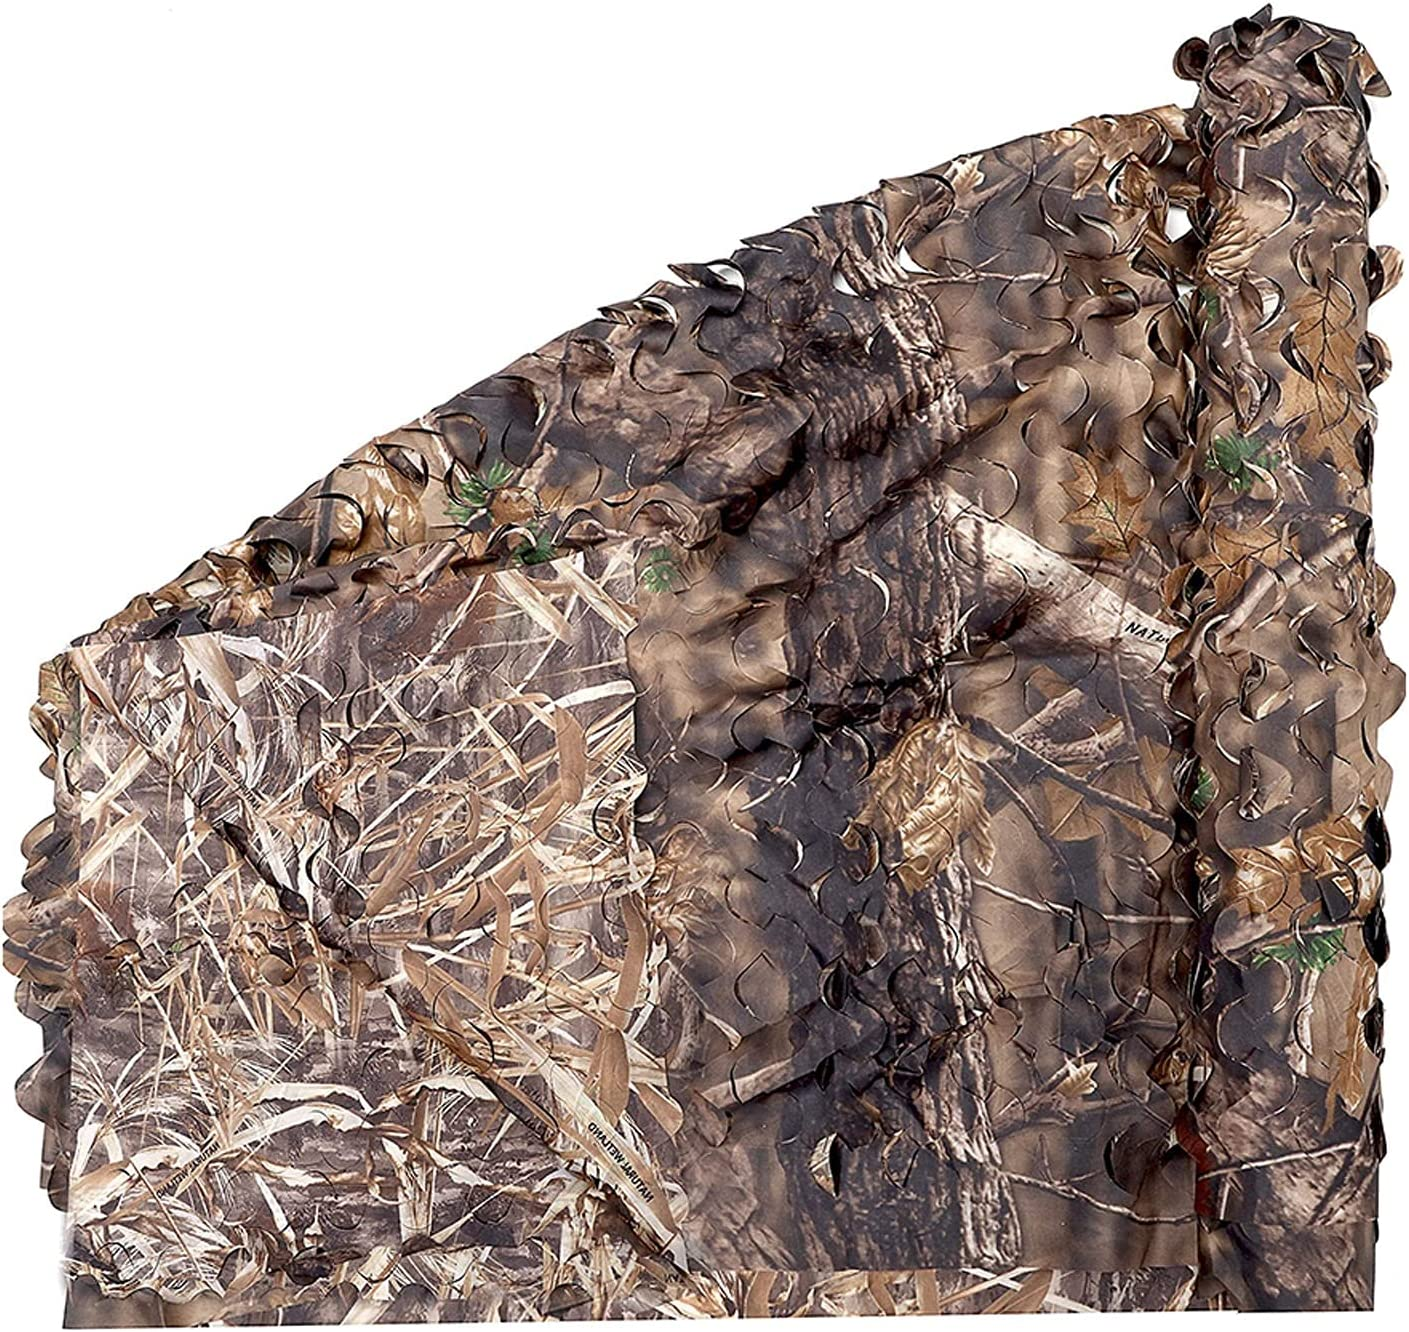 Bionic Camouflage nets Bulk Ranking Lowest price challenge TOP9 Rolls a Lightweight Military